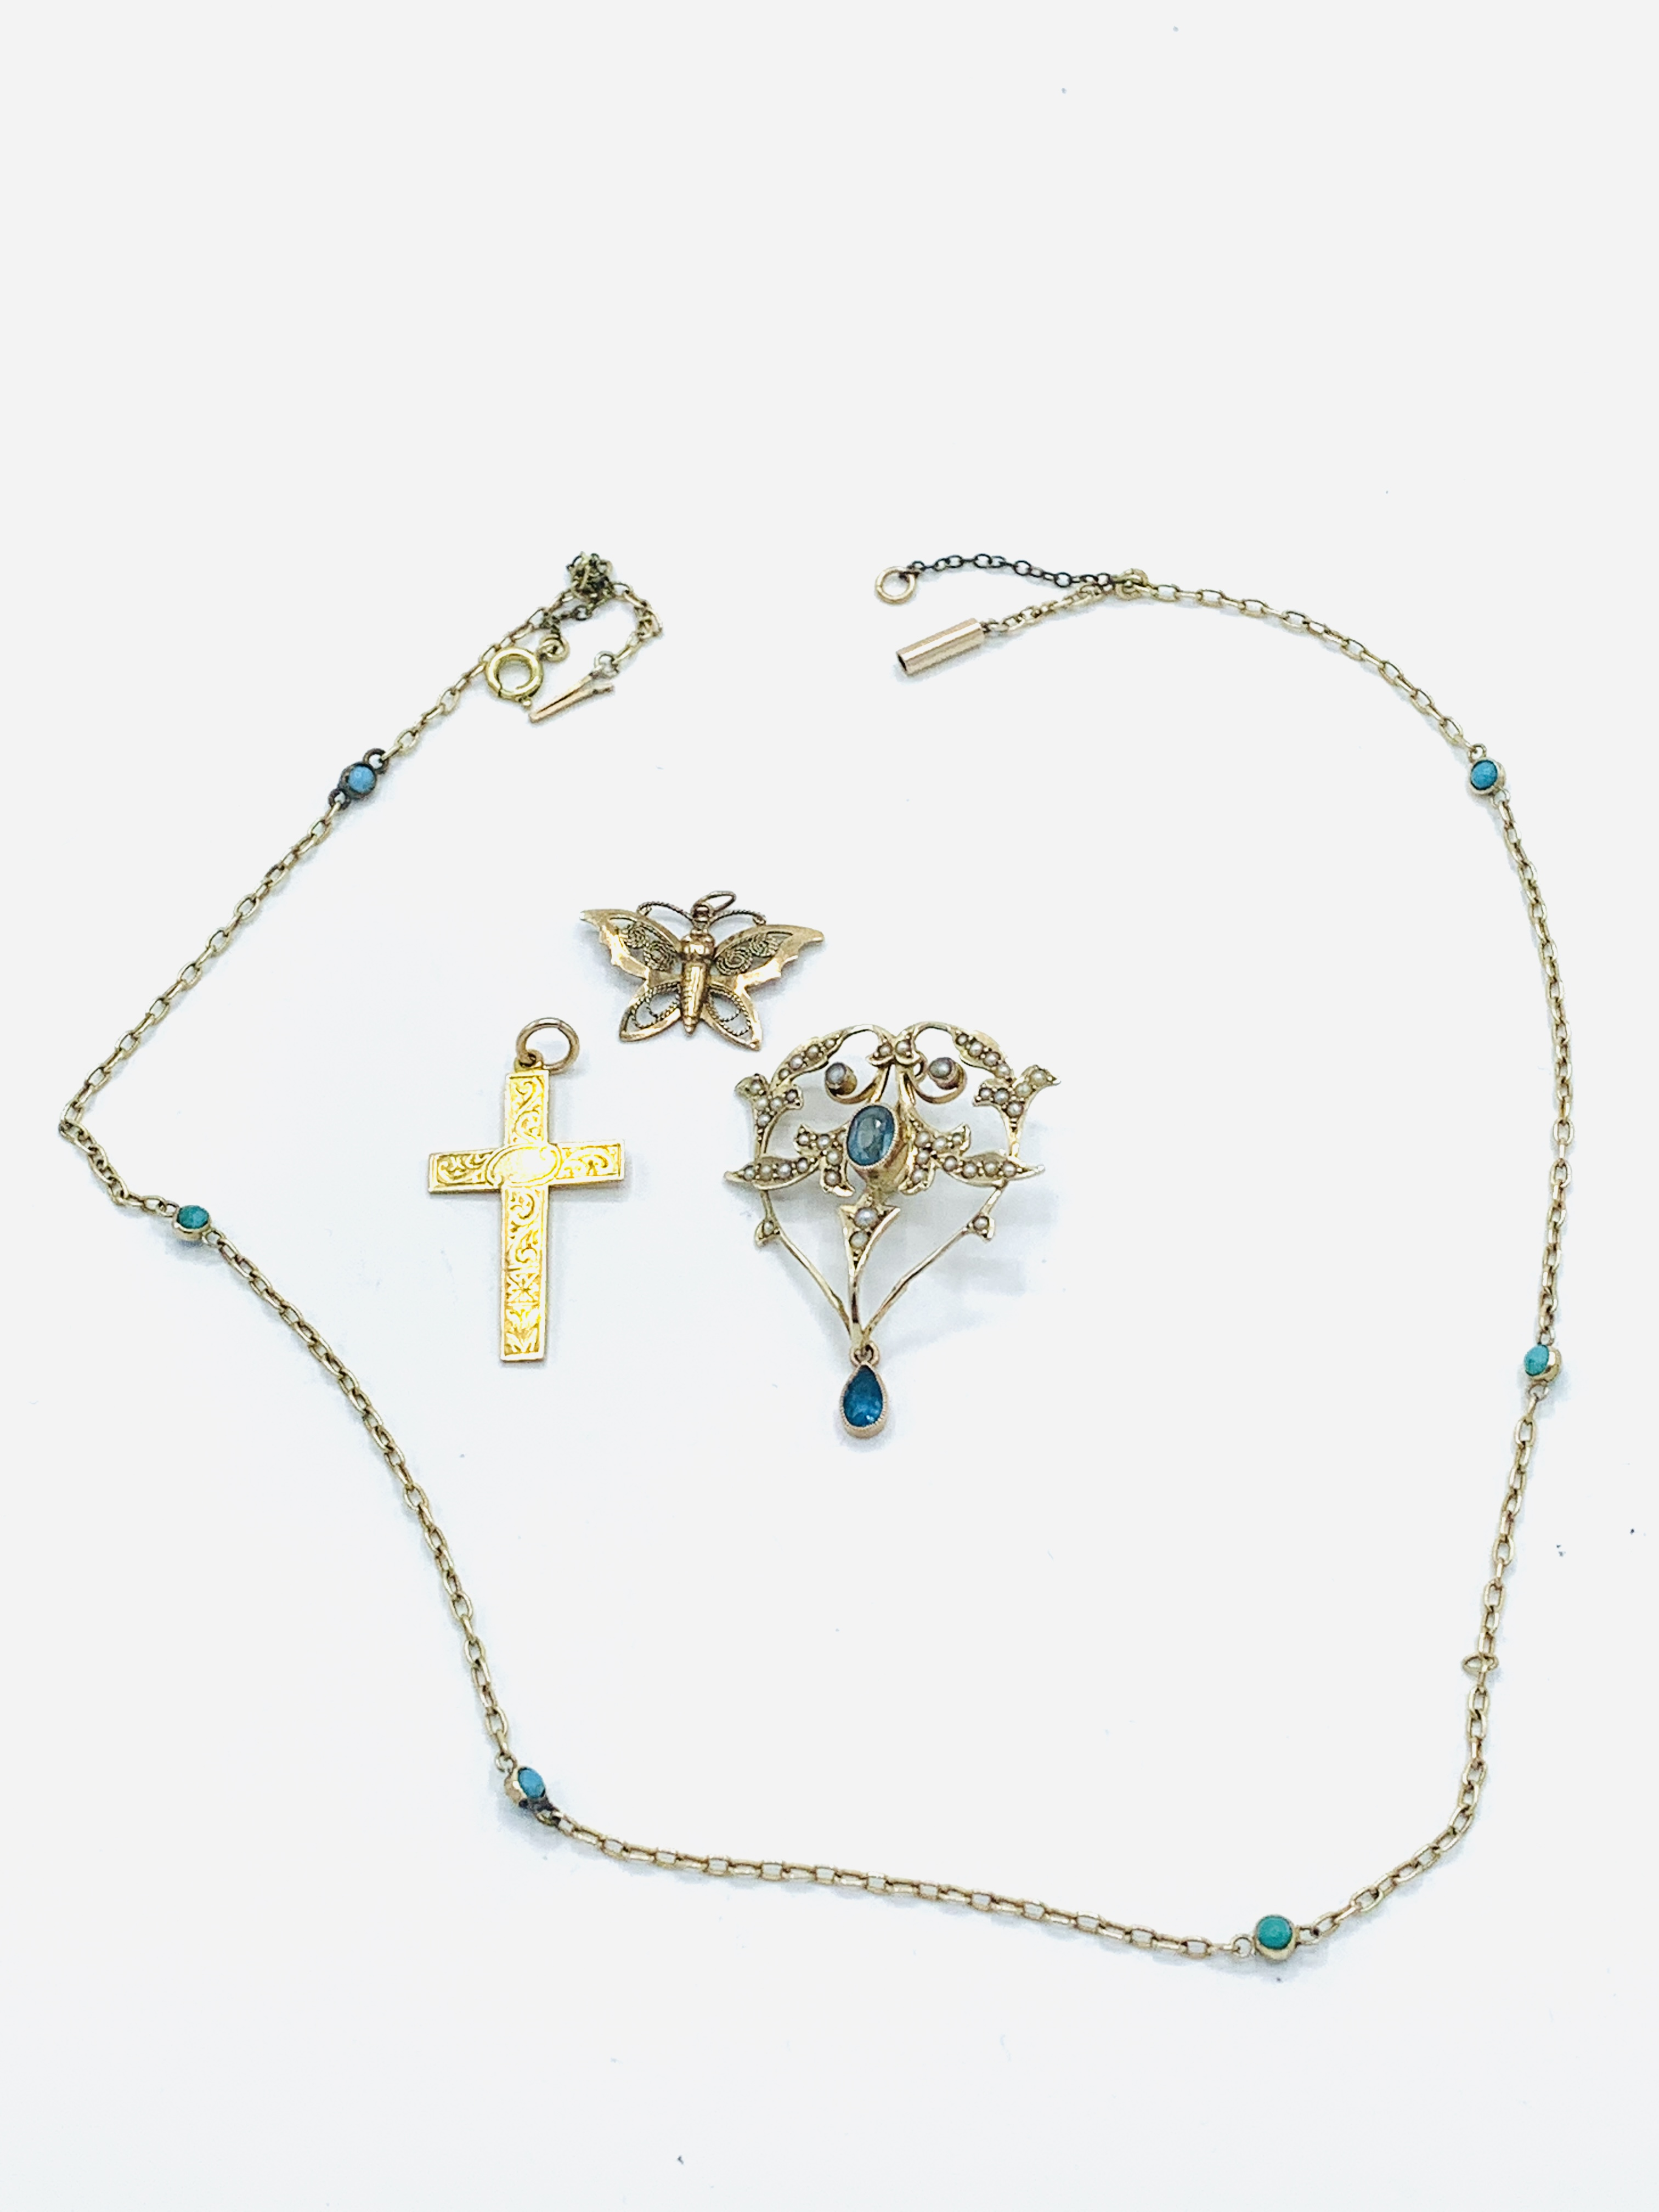 9ct gold aquamarine and seed pearl pendant; gold and turquoise chain; gold cross; butterfly brooch